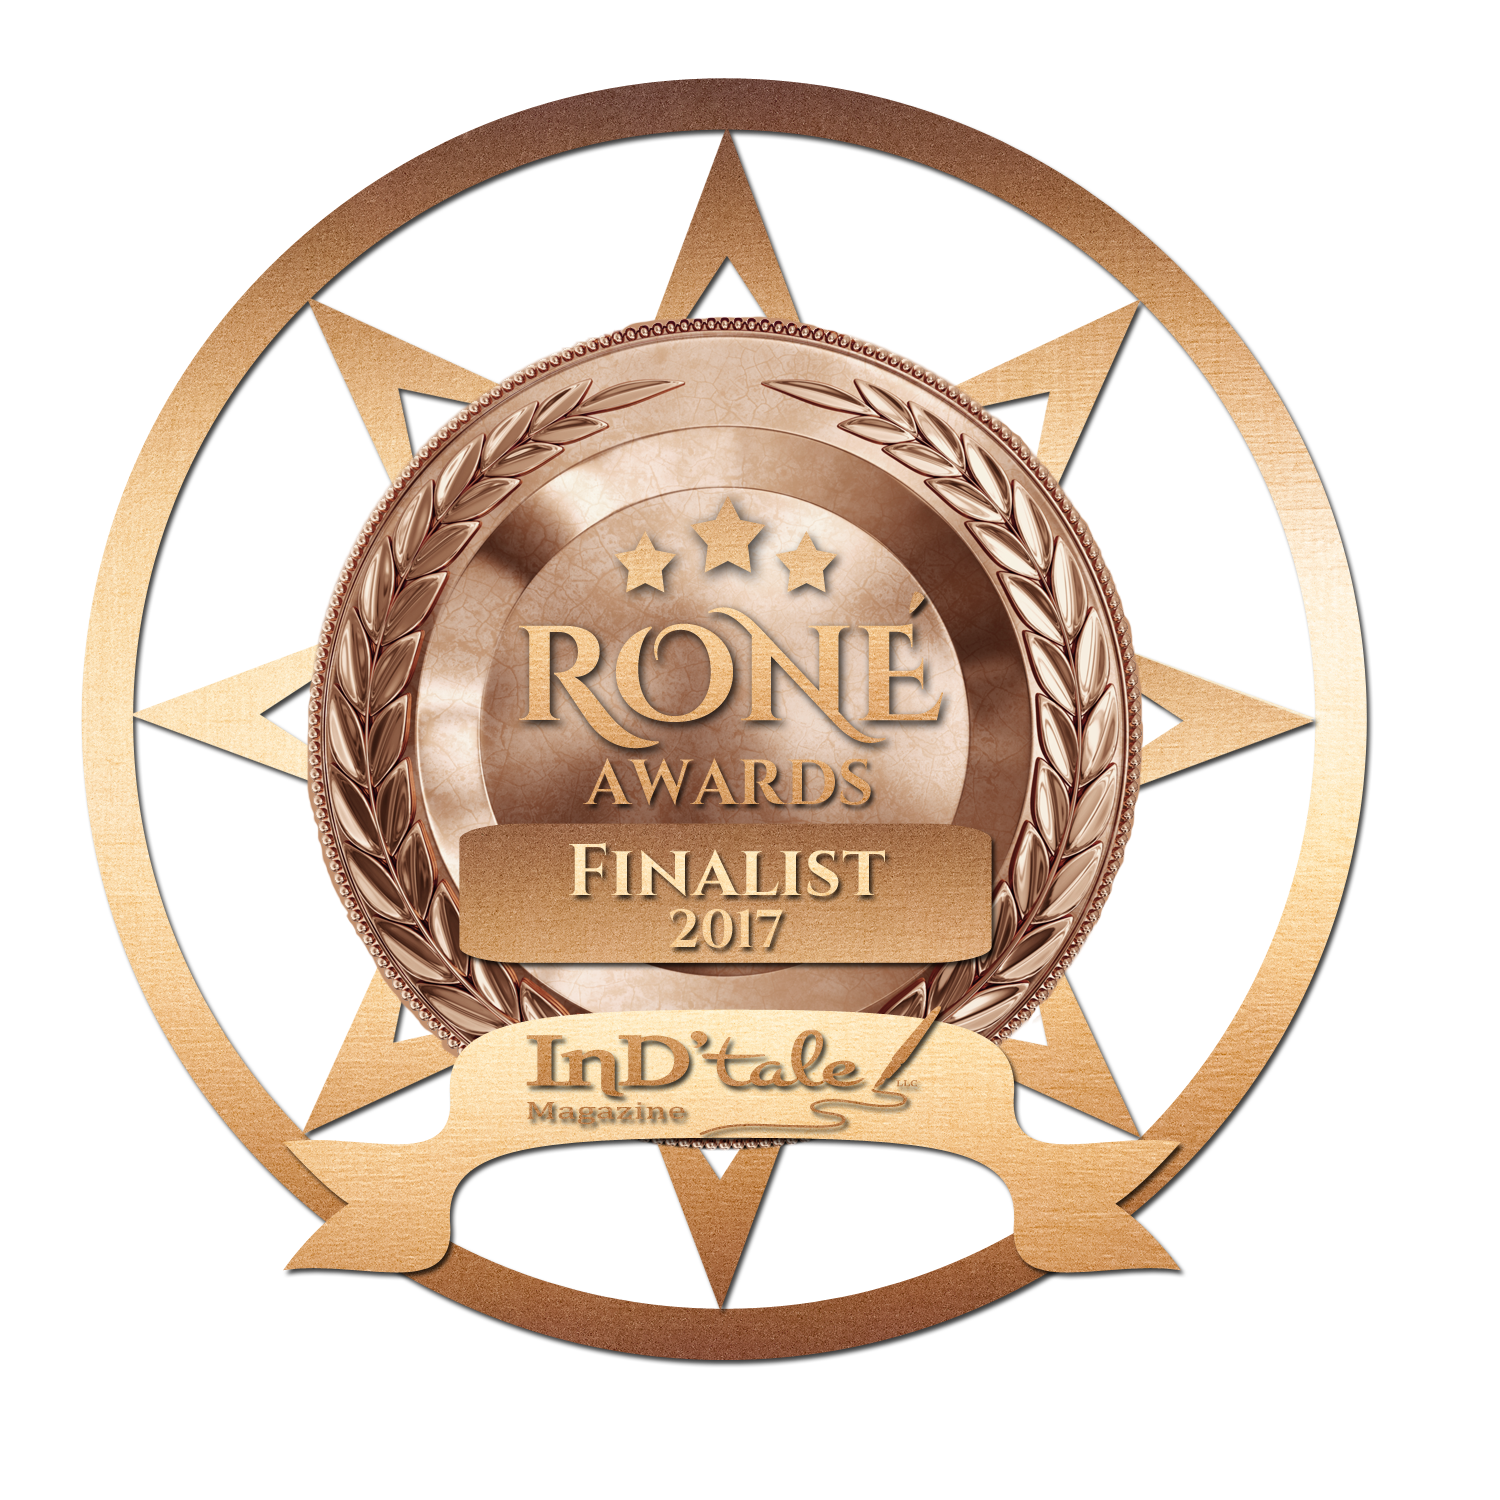 RONE Award Finalist for Best Suspense---The Captain